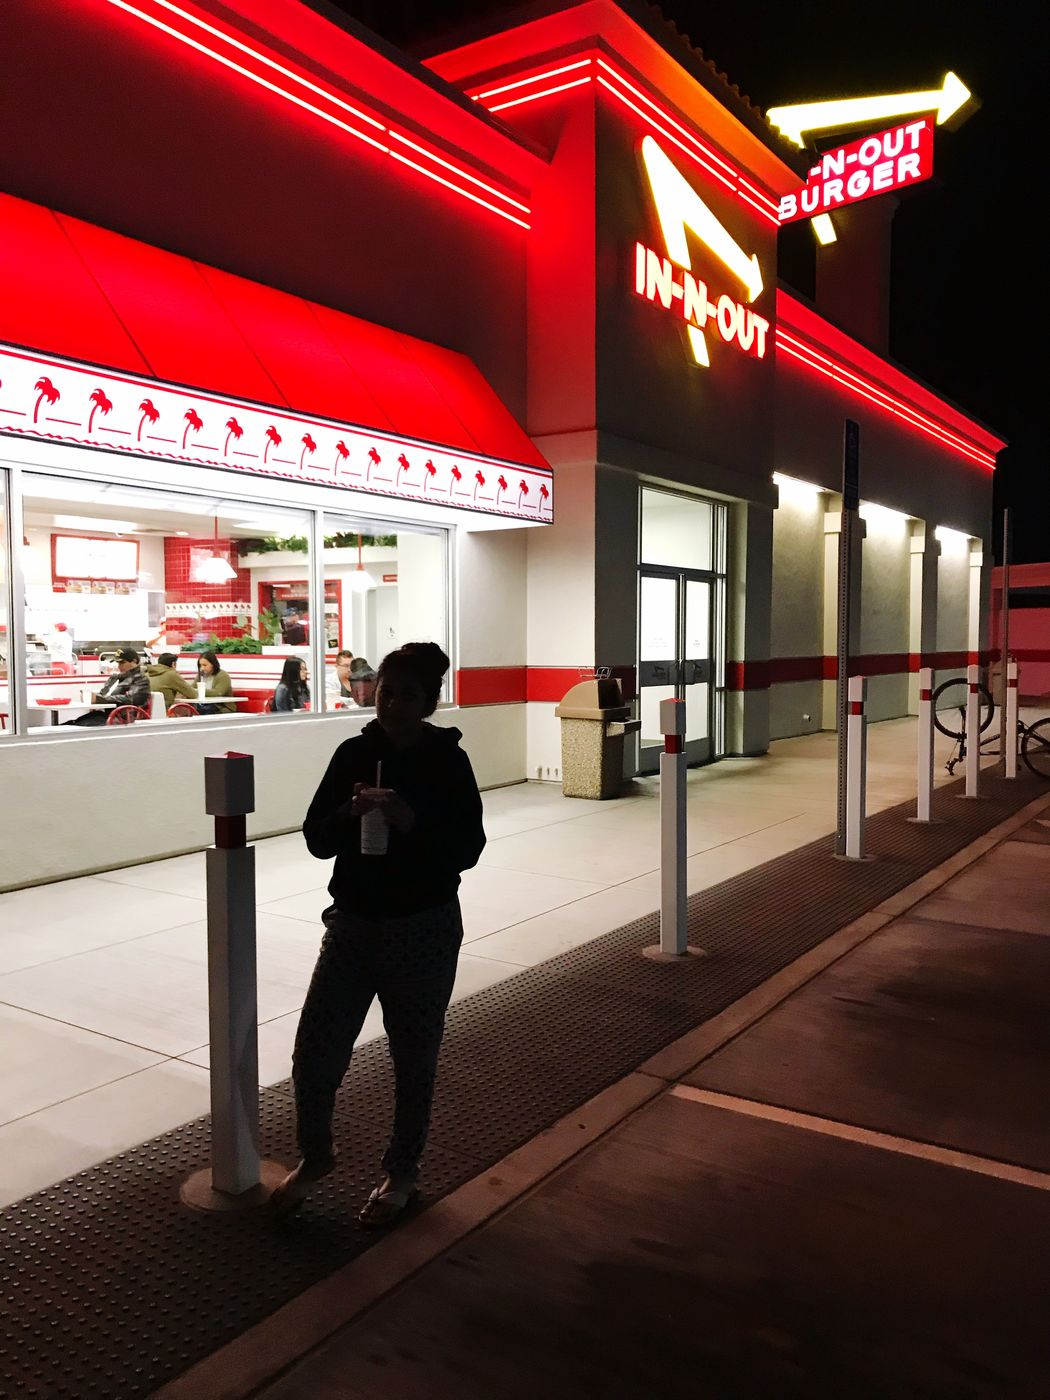 Best burgers ever since 1948 ❤️ California Restaurant Burger In N Out